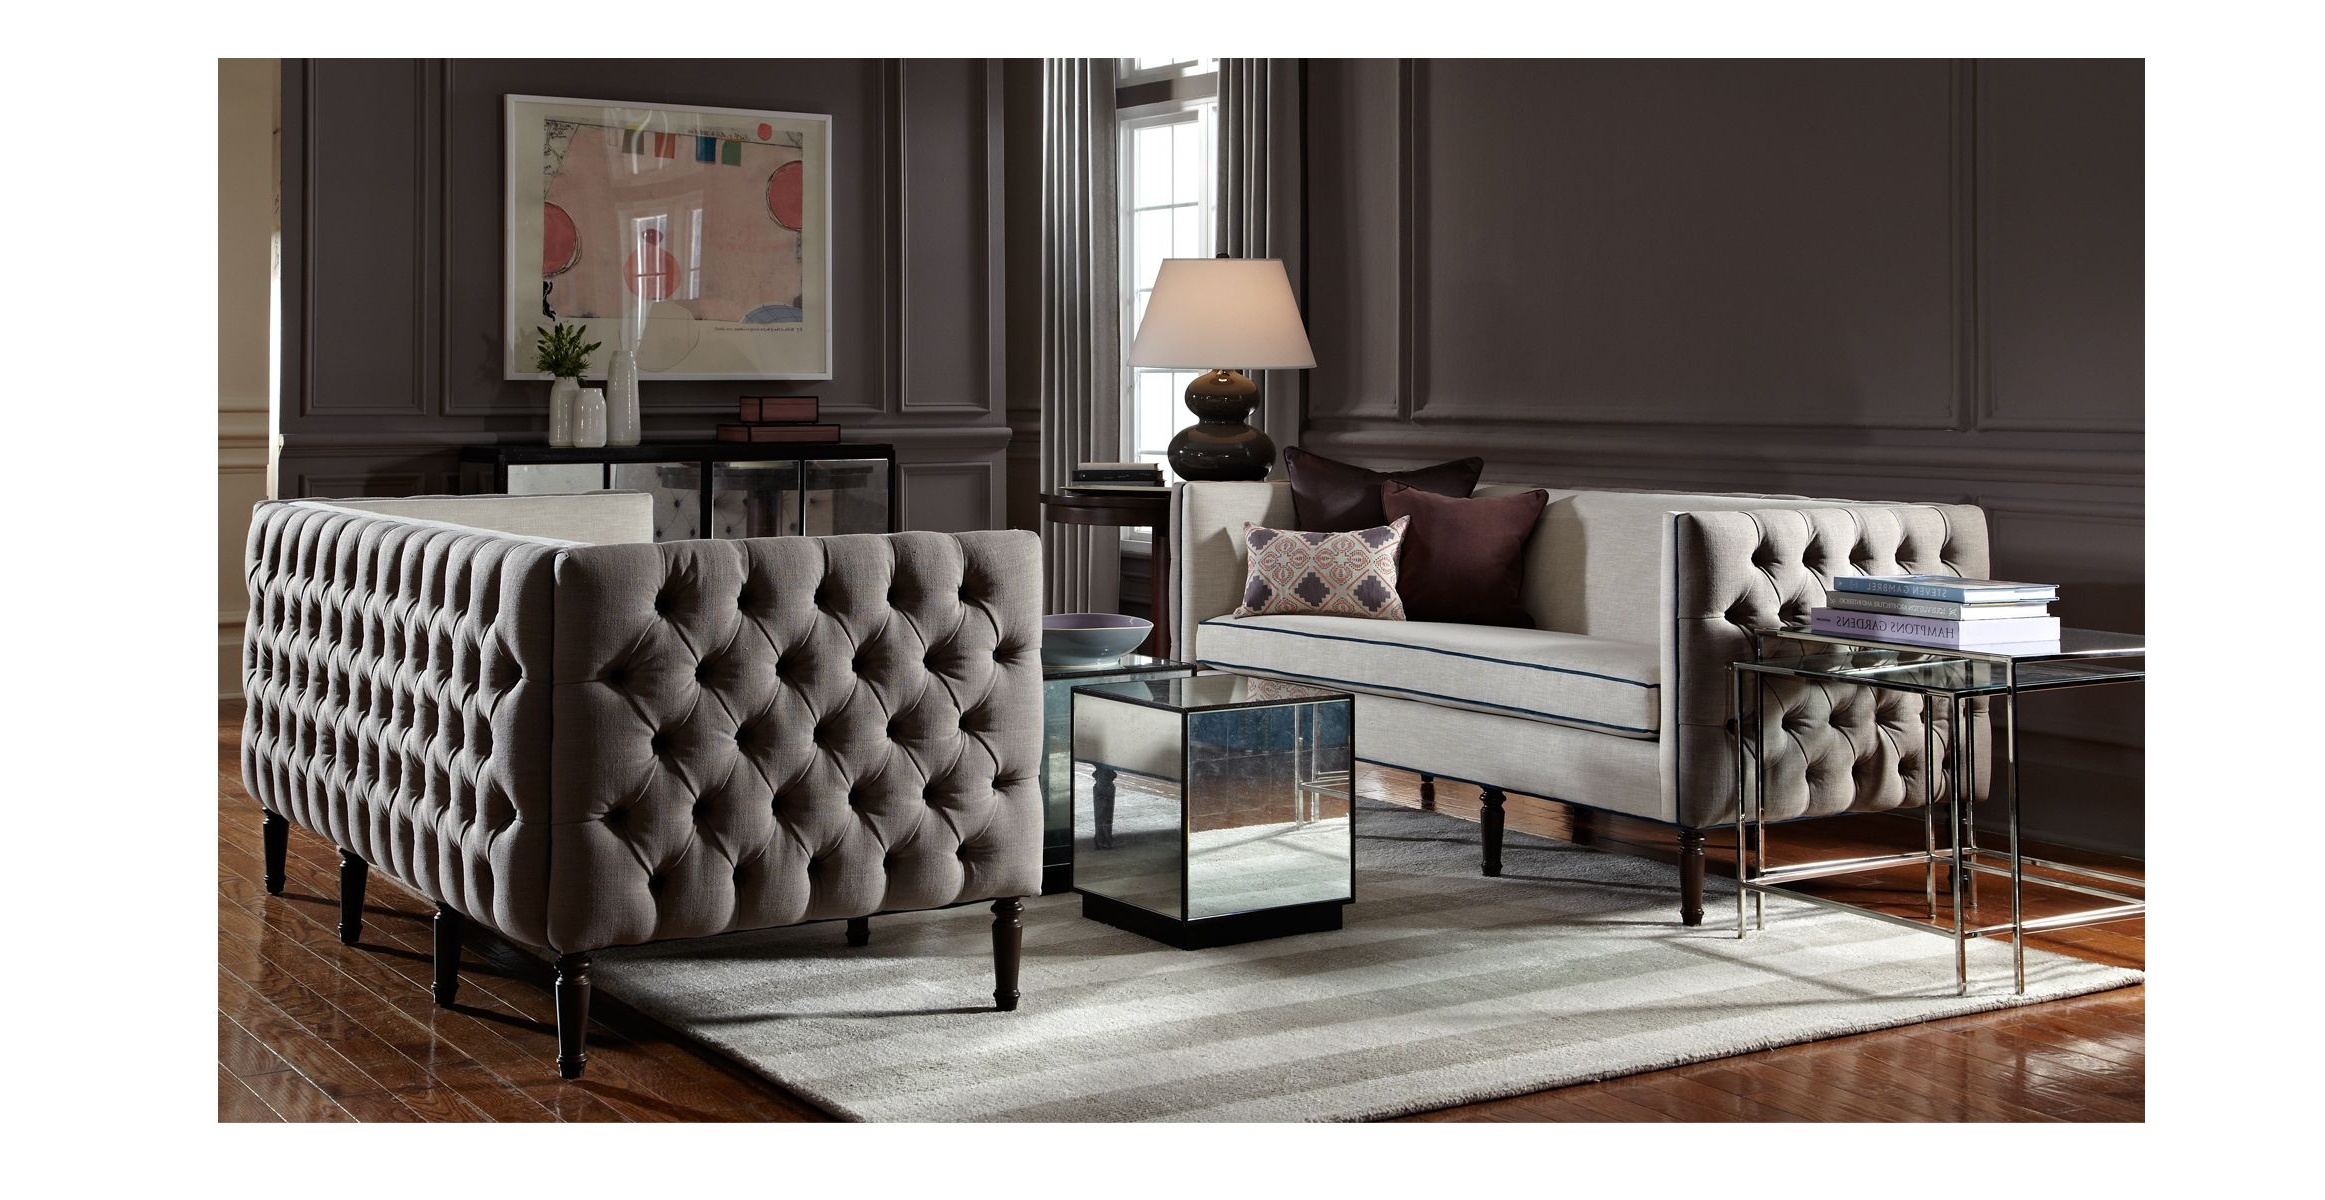 Modern Tufted Sofa – Google Search | Turn Of The Century Moderne Regarding Parsons Travertine Top & Elm Base 48X16 Console Tables (Gallery 12 of 17)